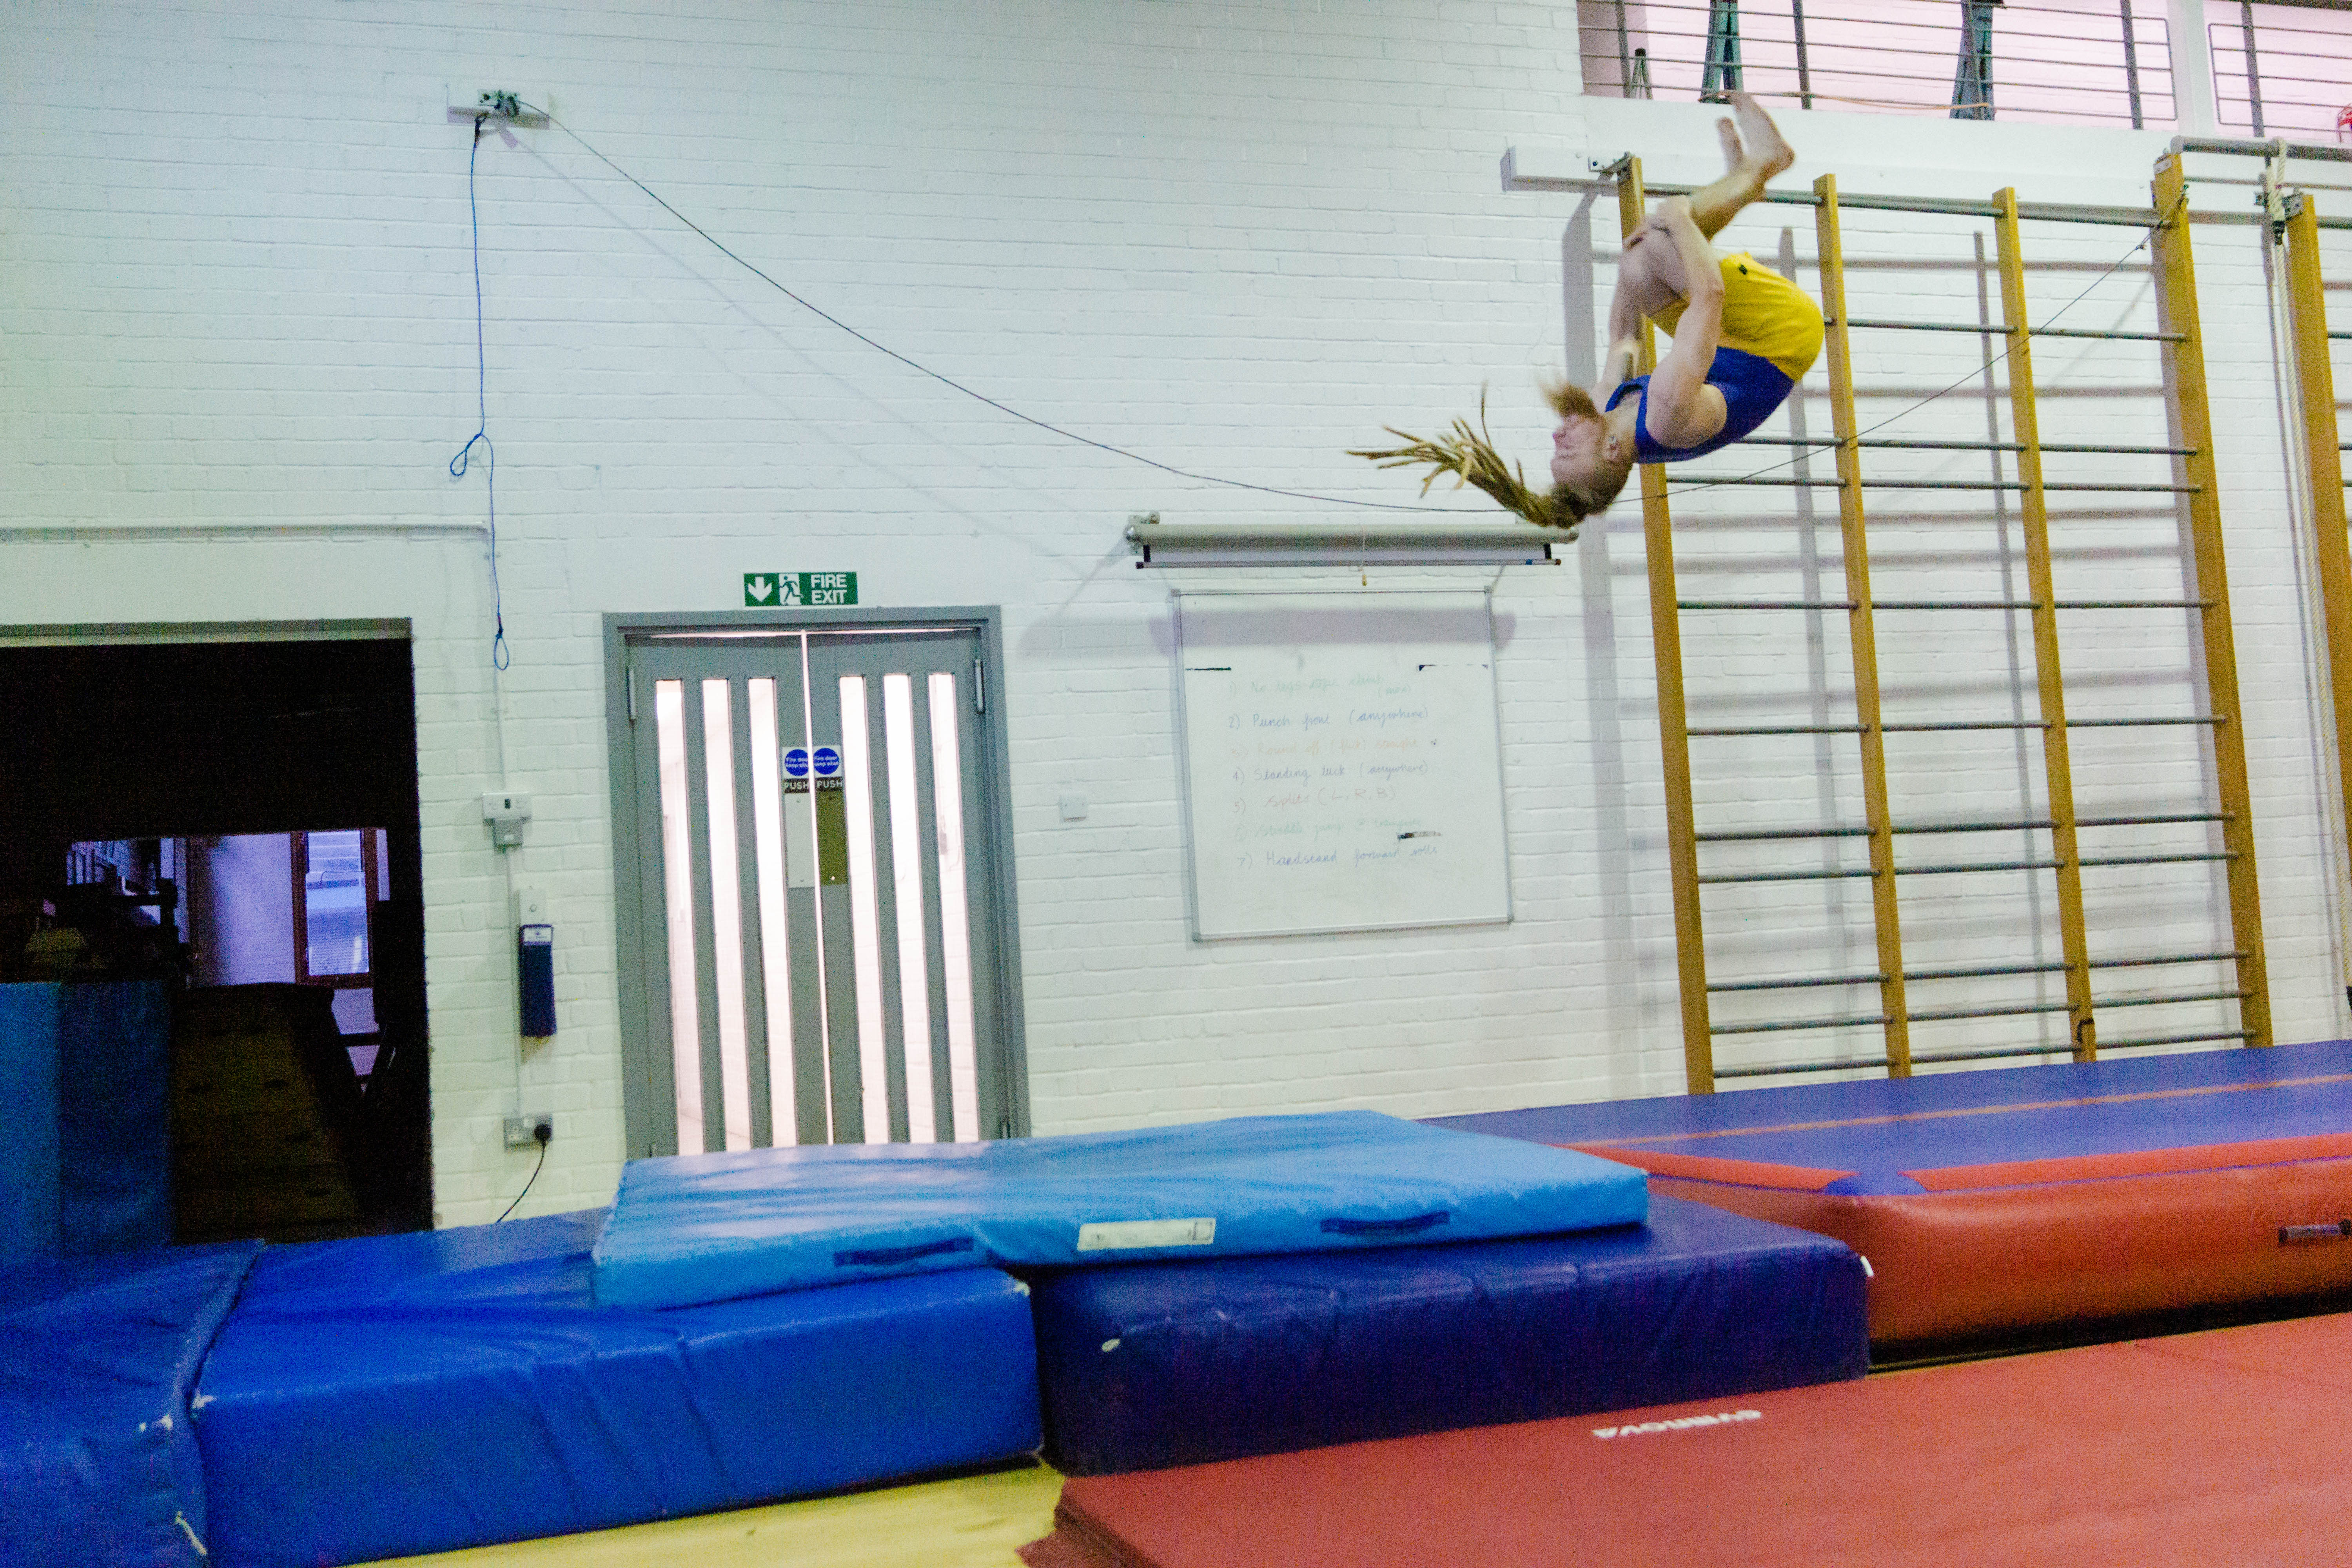 Gymnast performing a double back somersault on an air track